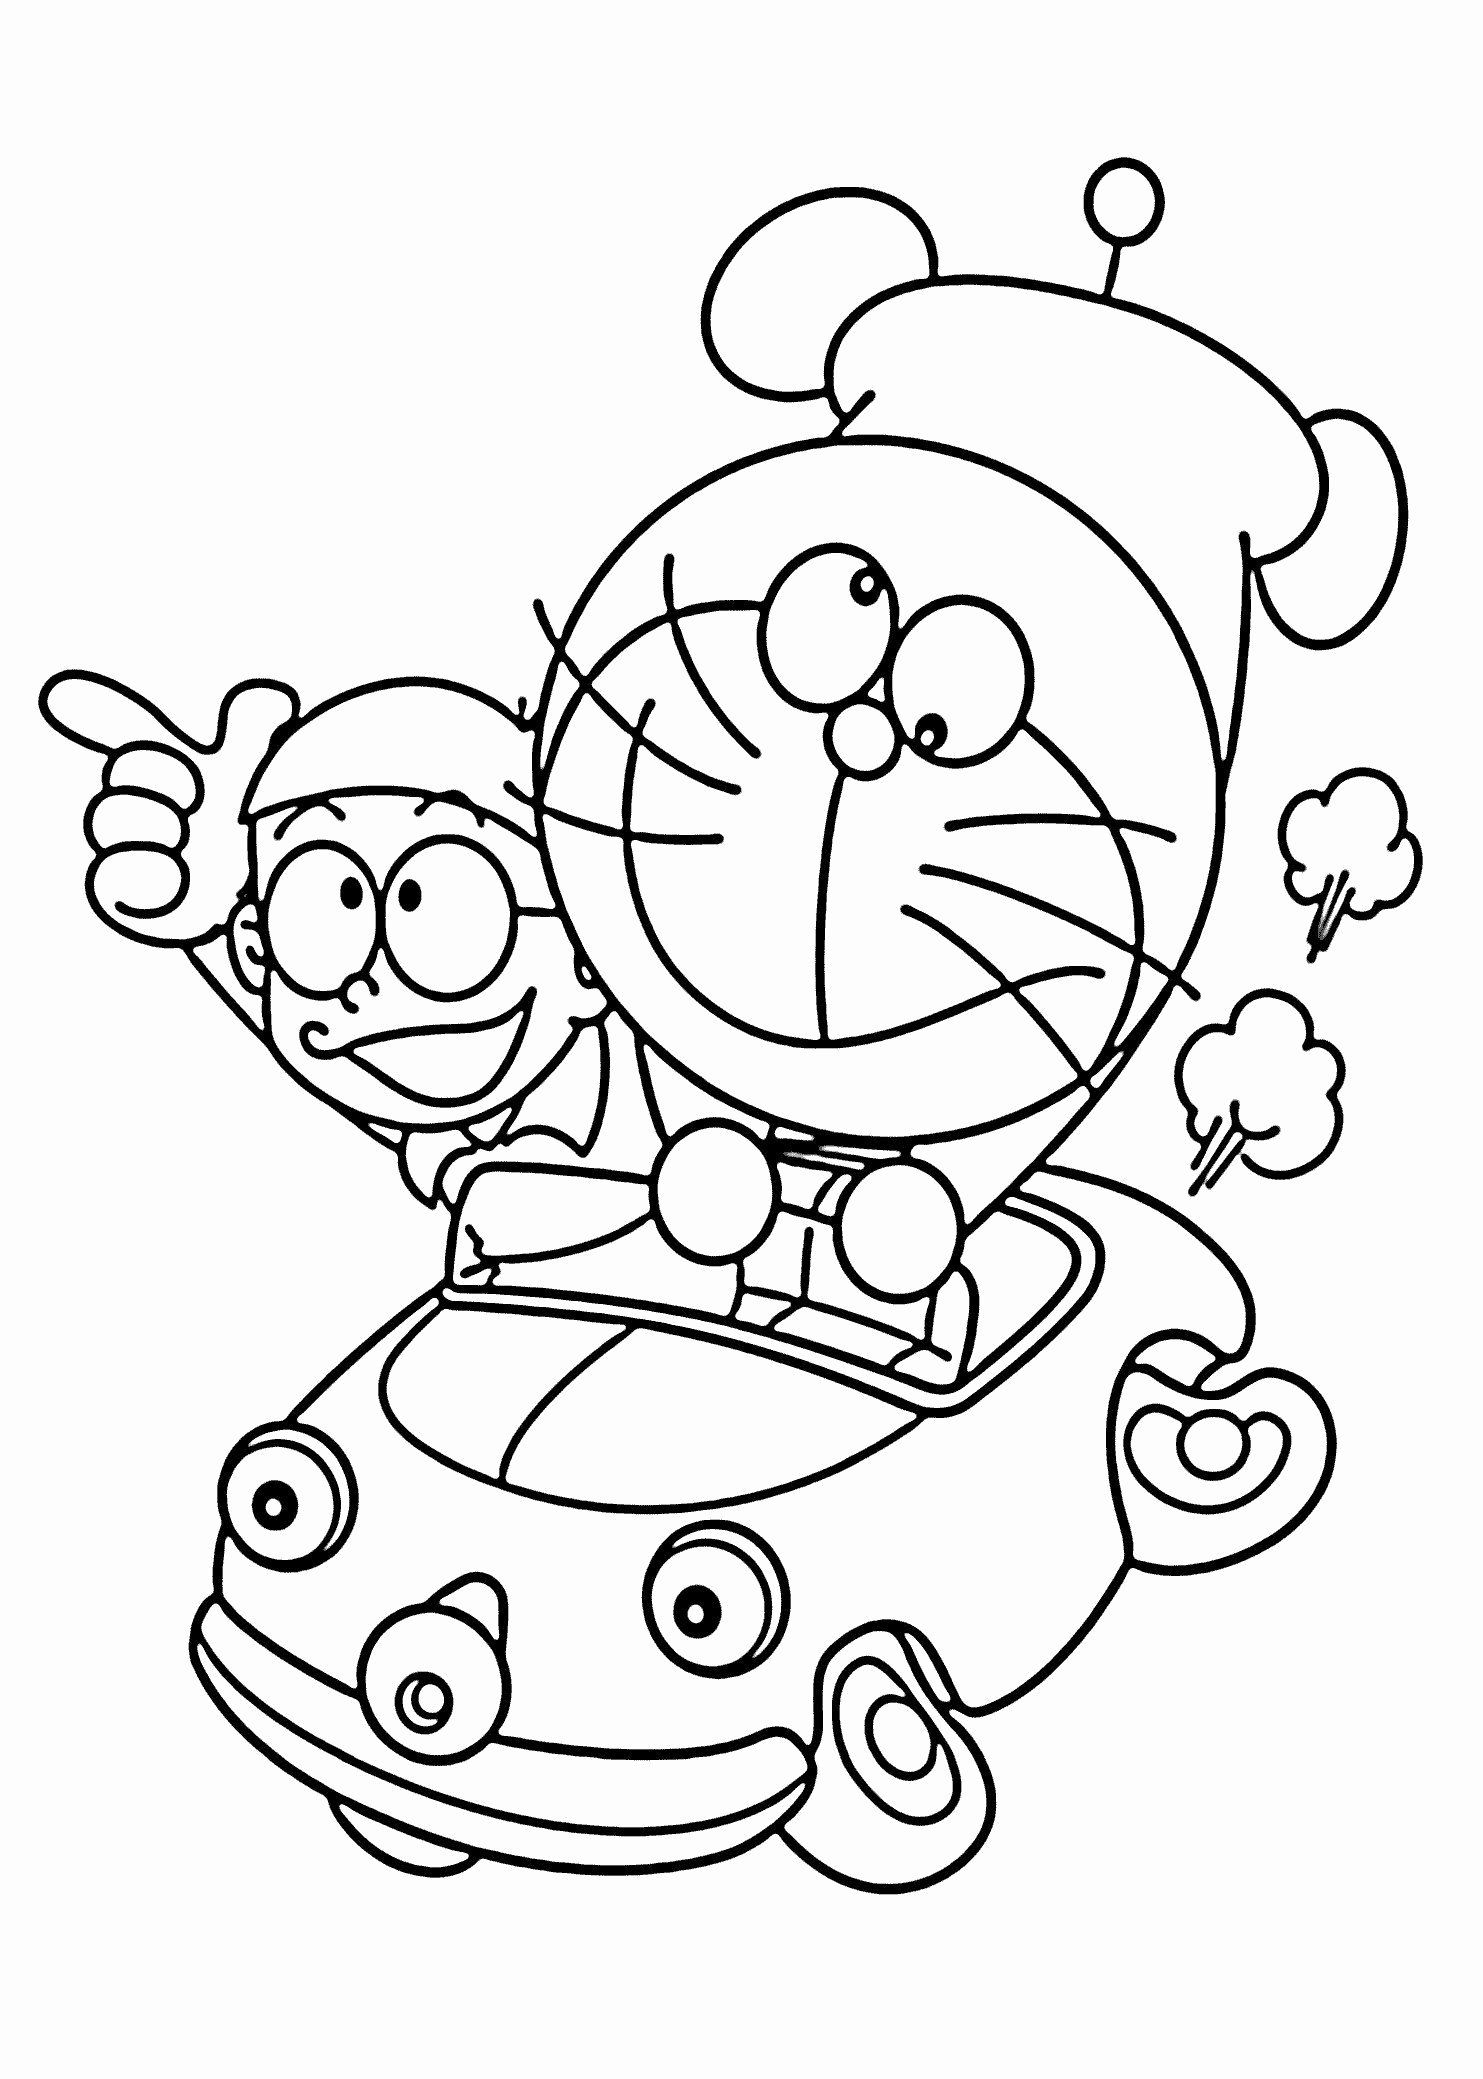 Pin On Best Christmas Coloring Pages